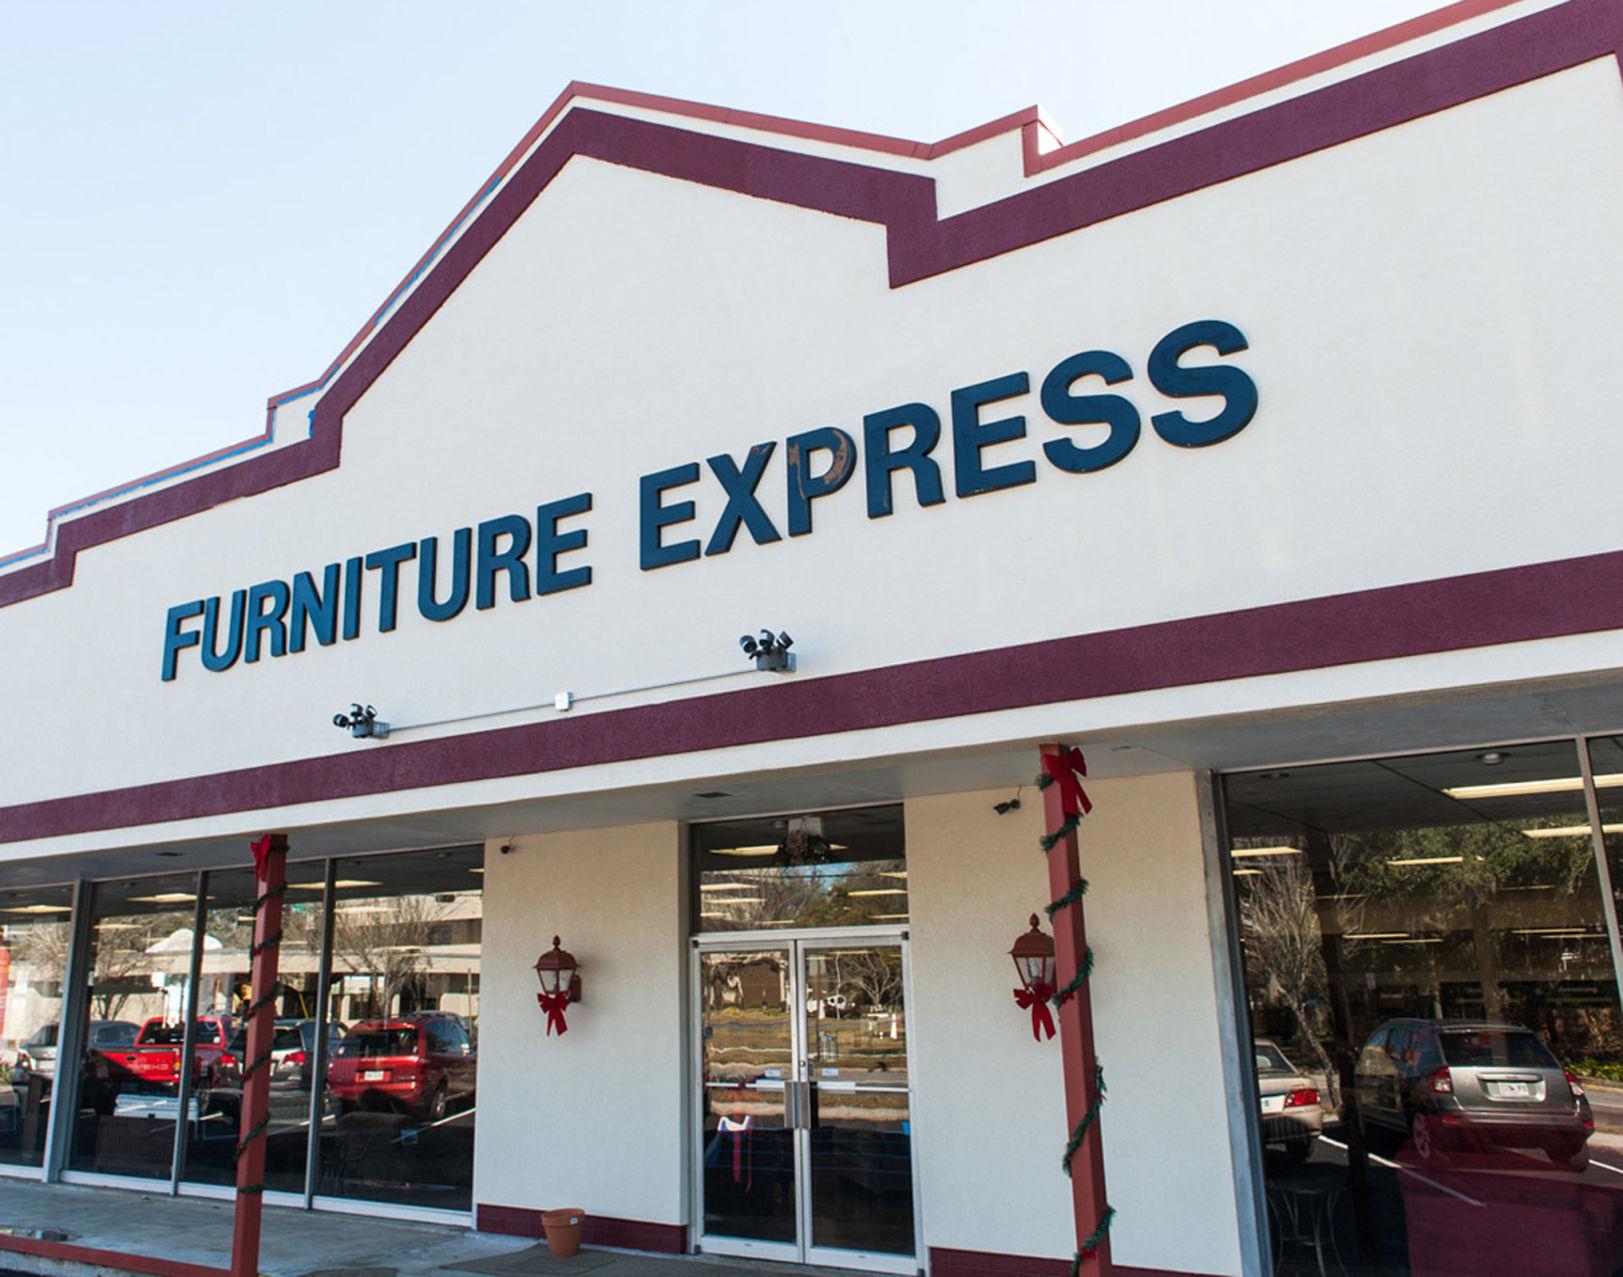 The New And Improved Furniture Express, Beds For Less